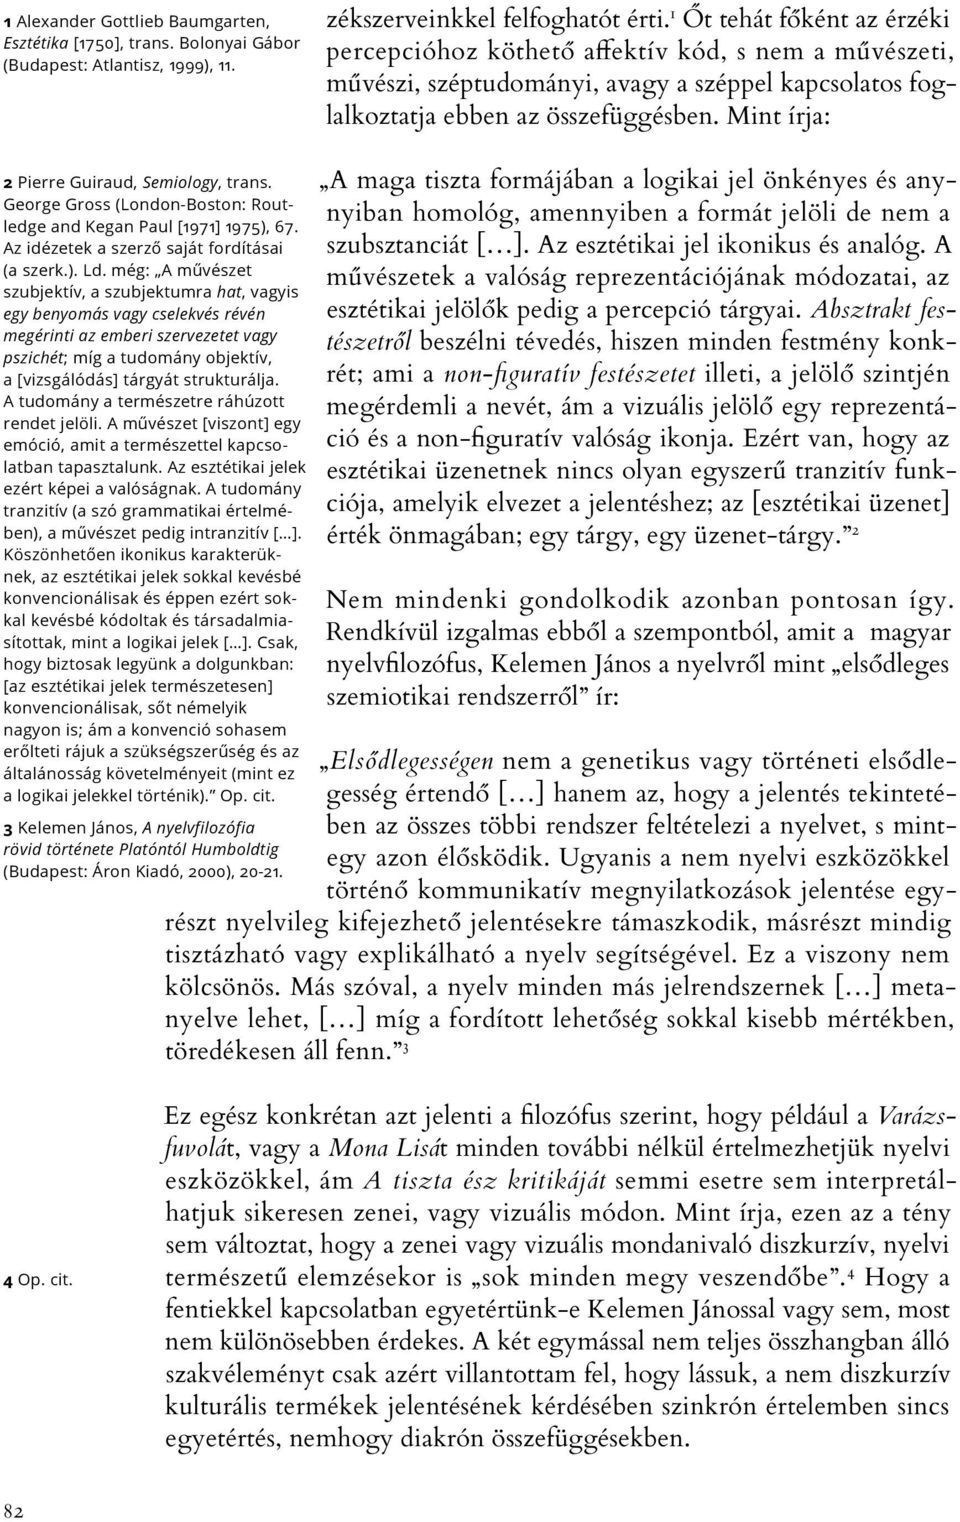 Mint írja: 2 Pierre Guiraud, Semiology, trans. George Gross (London-Boston: Routledge and Kegan Paul [1971] 1975), 67. Az idézetek a szerző saját fordításai (a szerk.). Ld.